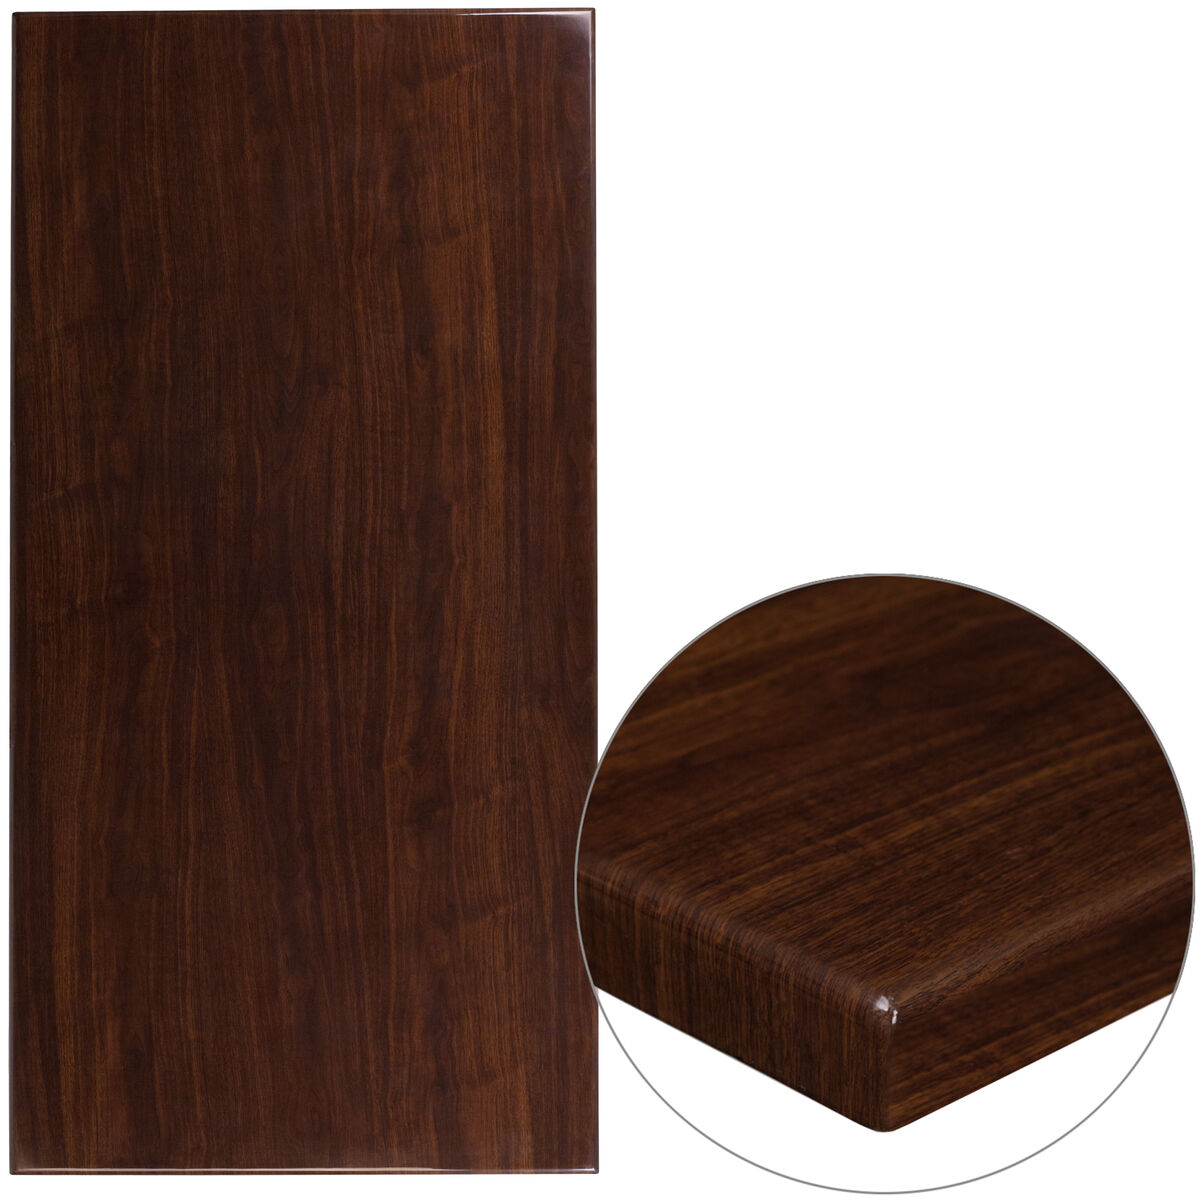 X Walnut Resin Table Top BFDHWARECTDR - Thick wood table top